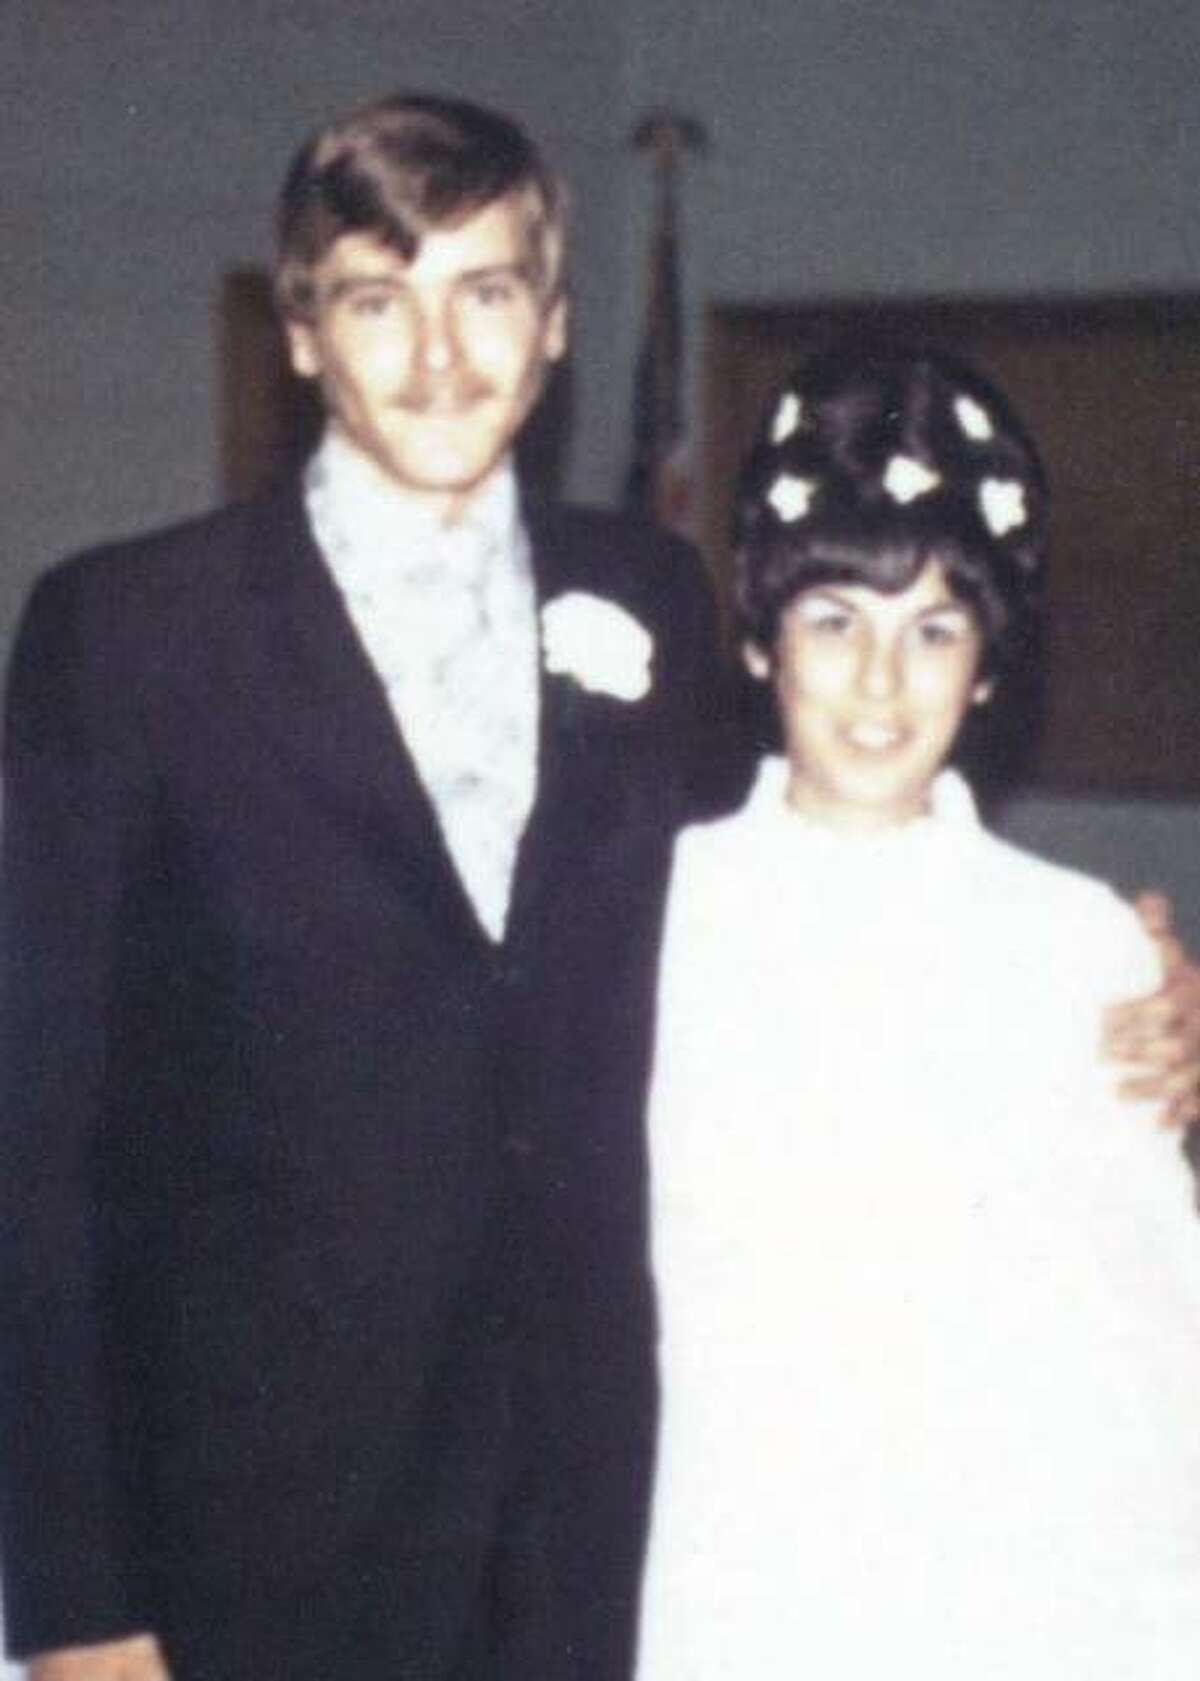 Dave and Mary Eckhouse at their wedding